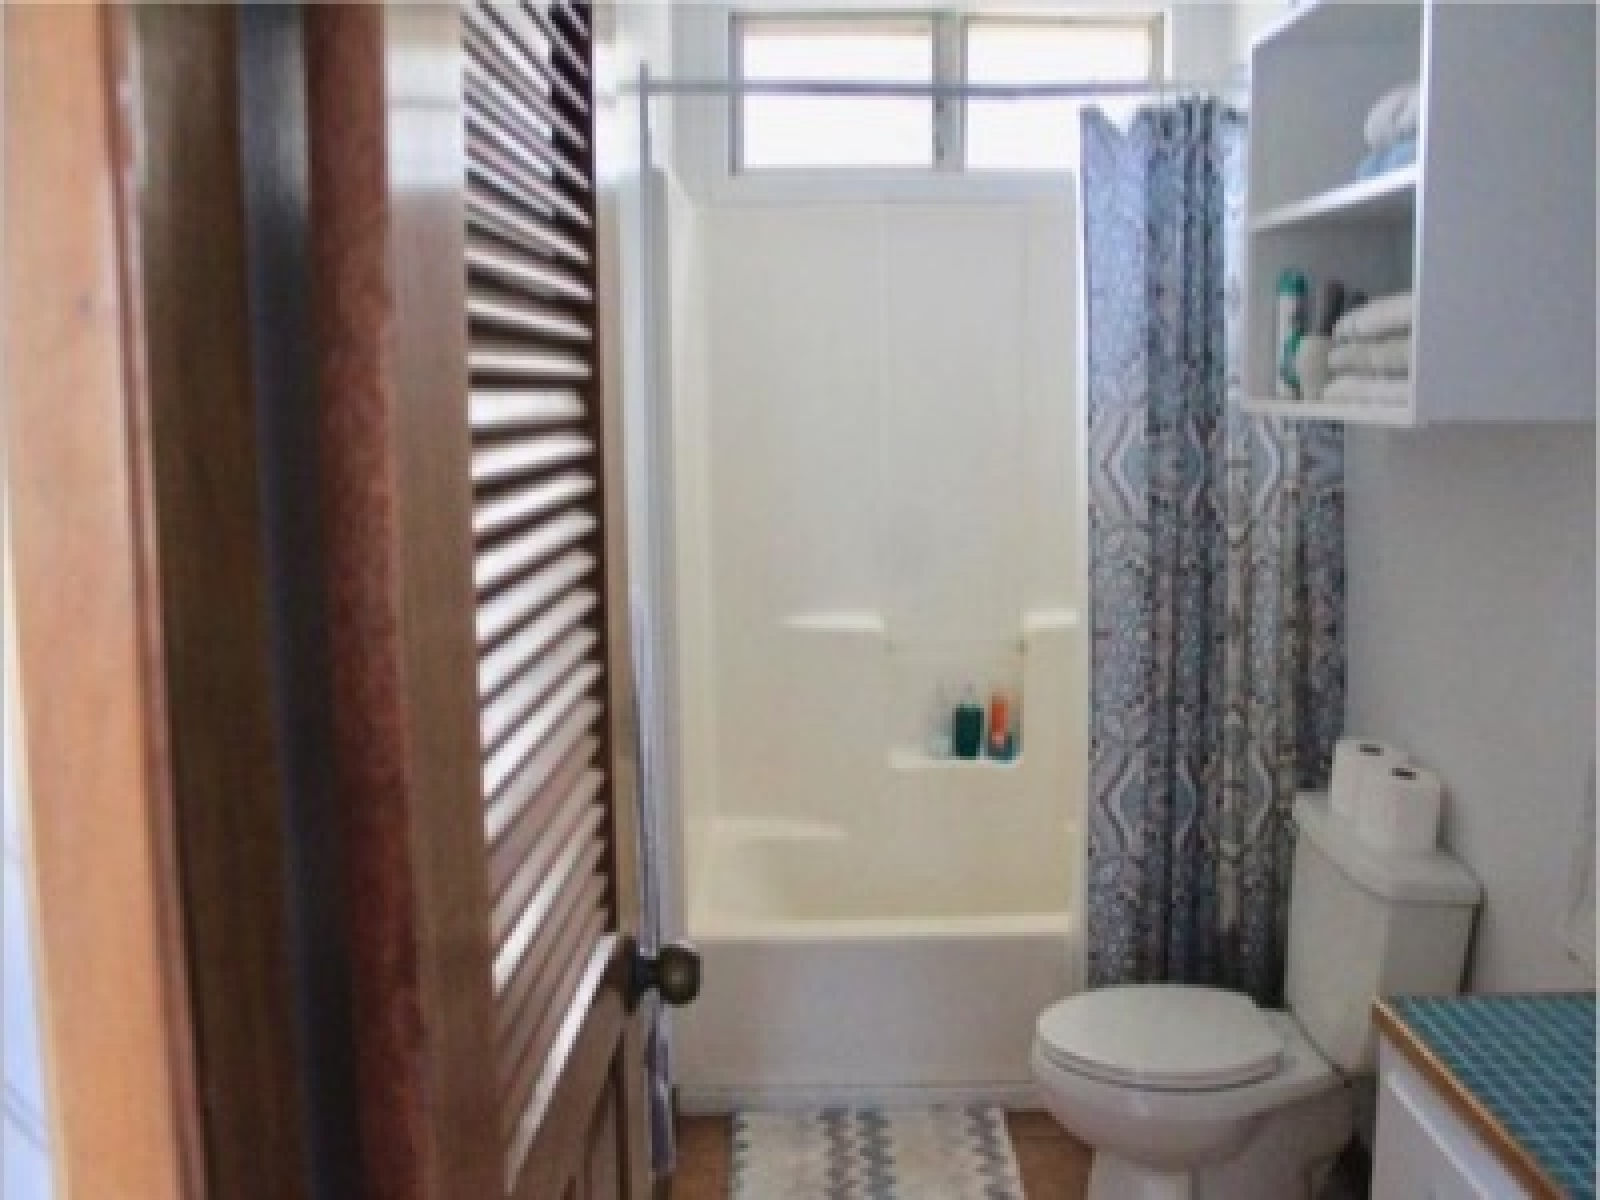 A functional bathroom with storage, light and space.